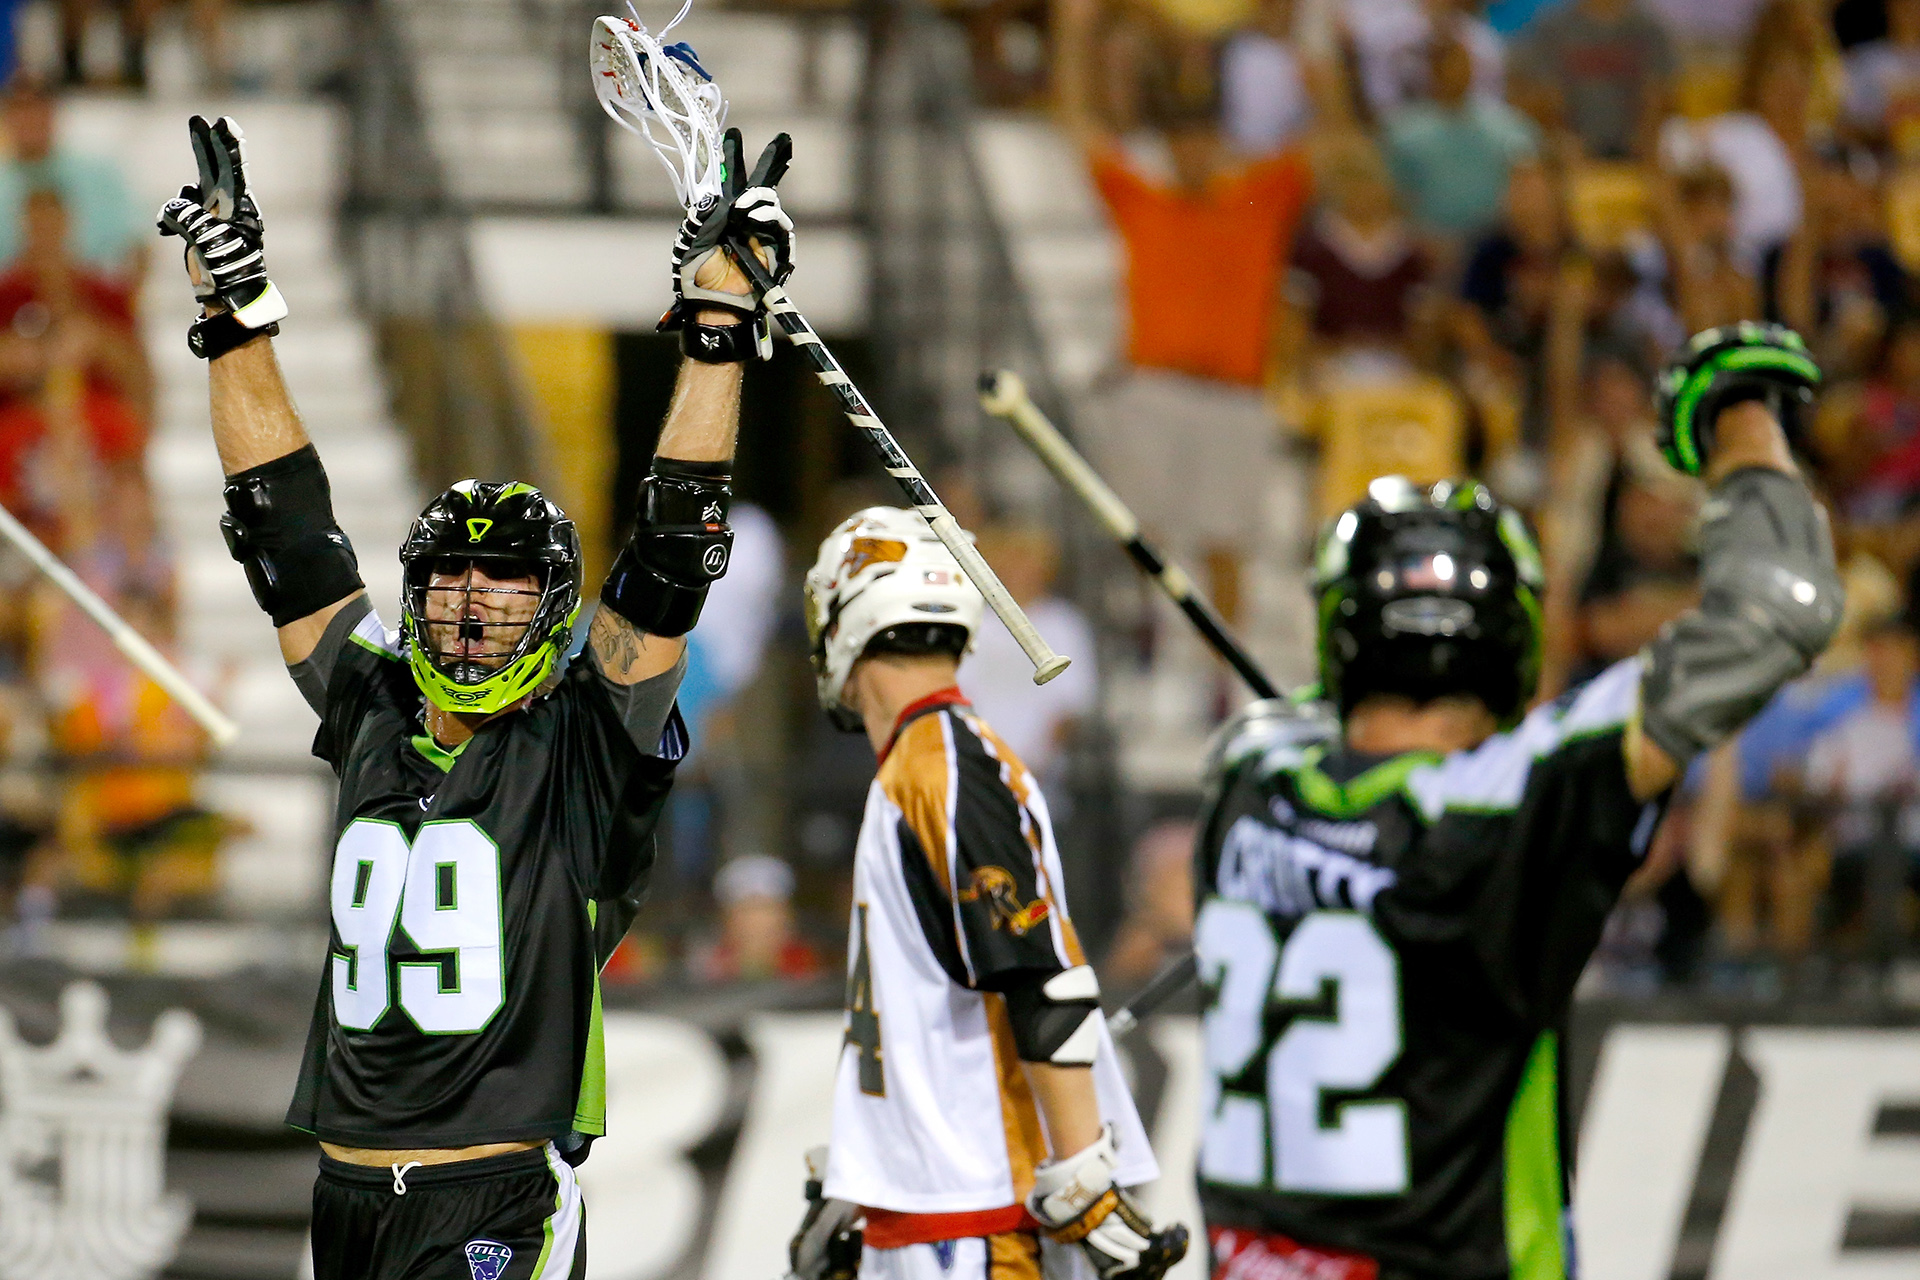 KENNESAW, GA - AUGUST 08:  Paul Rabil #99 of the New York Lizards celebrates after scoring a goal against the Rochester Rattlers during the 2015 Major League Lacrosse Championship Game at Fifth Third Bank Stadium on August 8, 2015 in Kennesaw, Georgia.  (Photo by Kevin C. Cox/Getty Images)